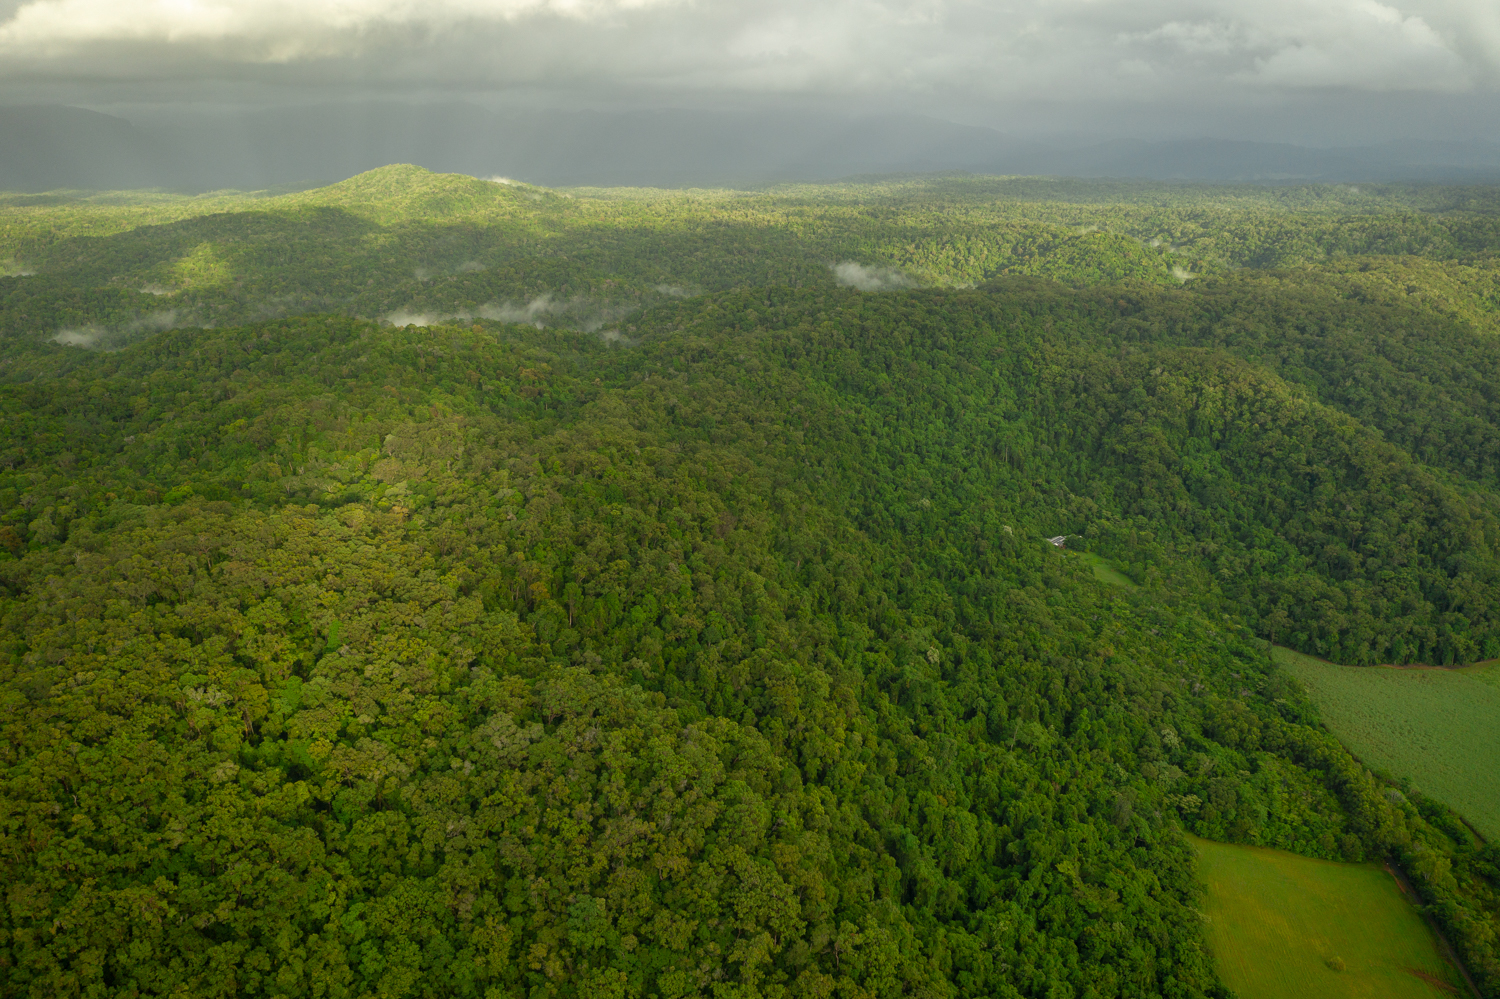 Rainforest Rescue - News - Planting Trees to Address Climate